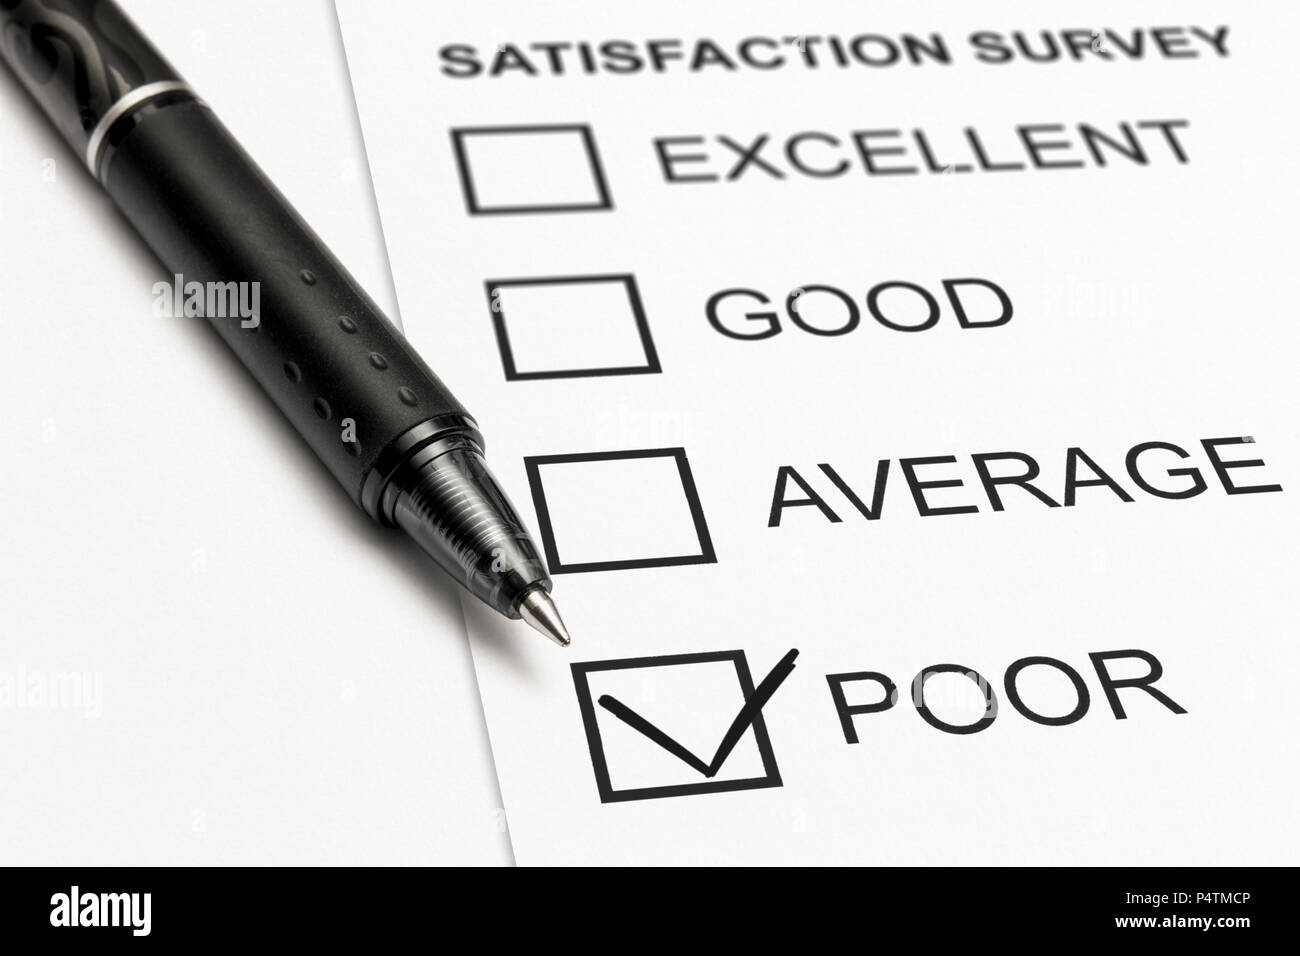 close up of a satisfaction survey with a check mark on poor - Stock Image